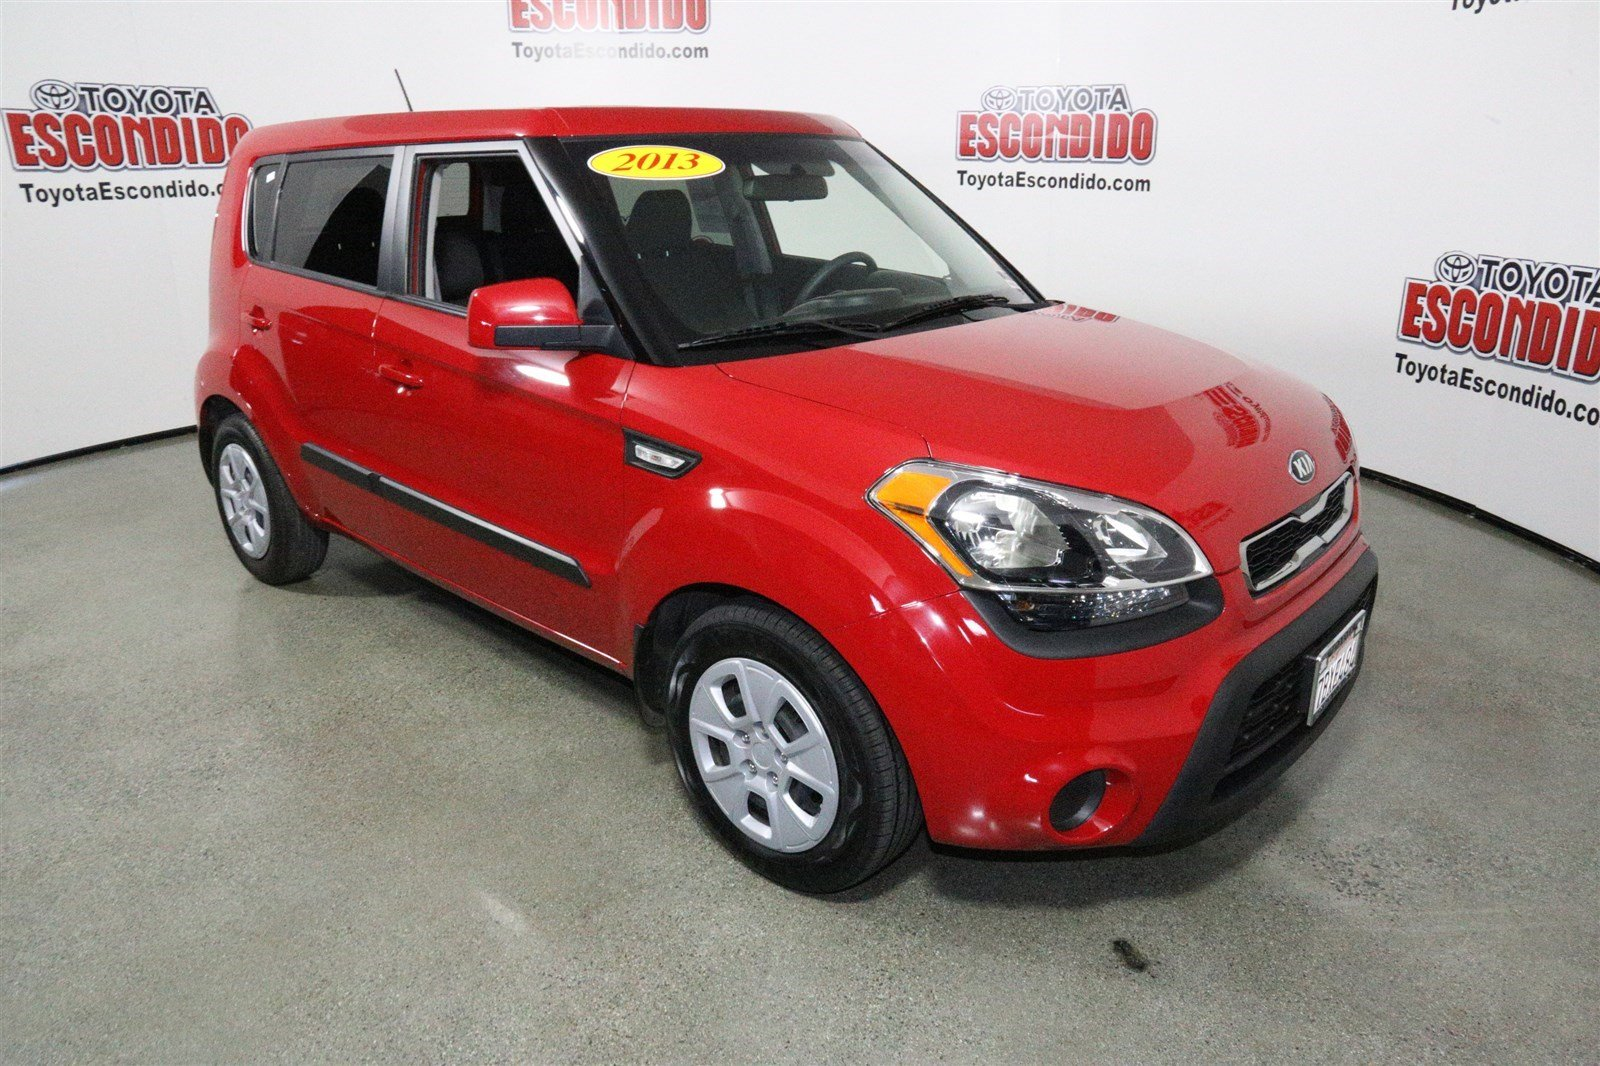 2013 Kia Soul Recalls >> Pre-Owned 2013 Kia Soul Base Station Wagon in Escondido #59541 | Toyota of Escondido